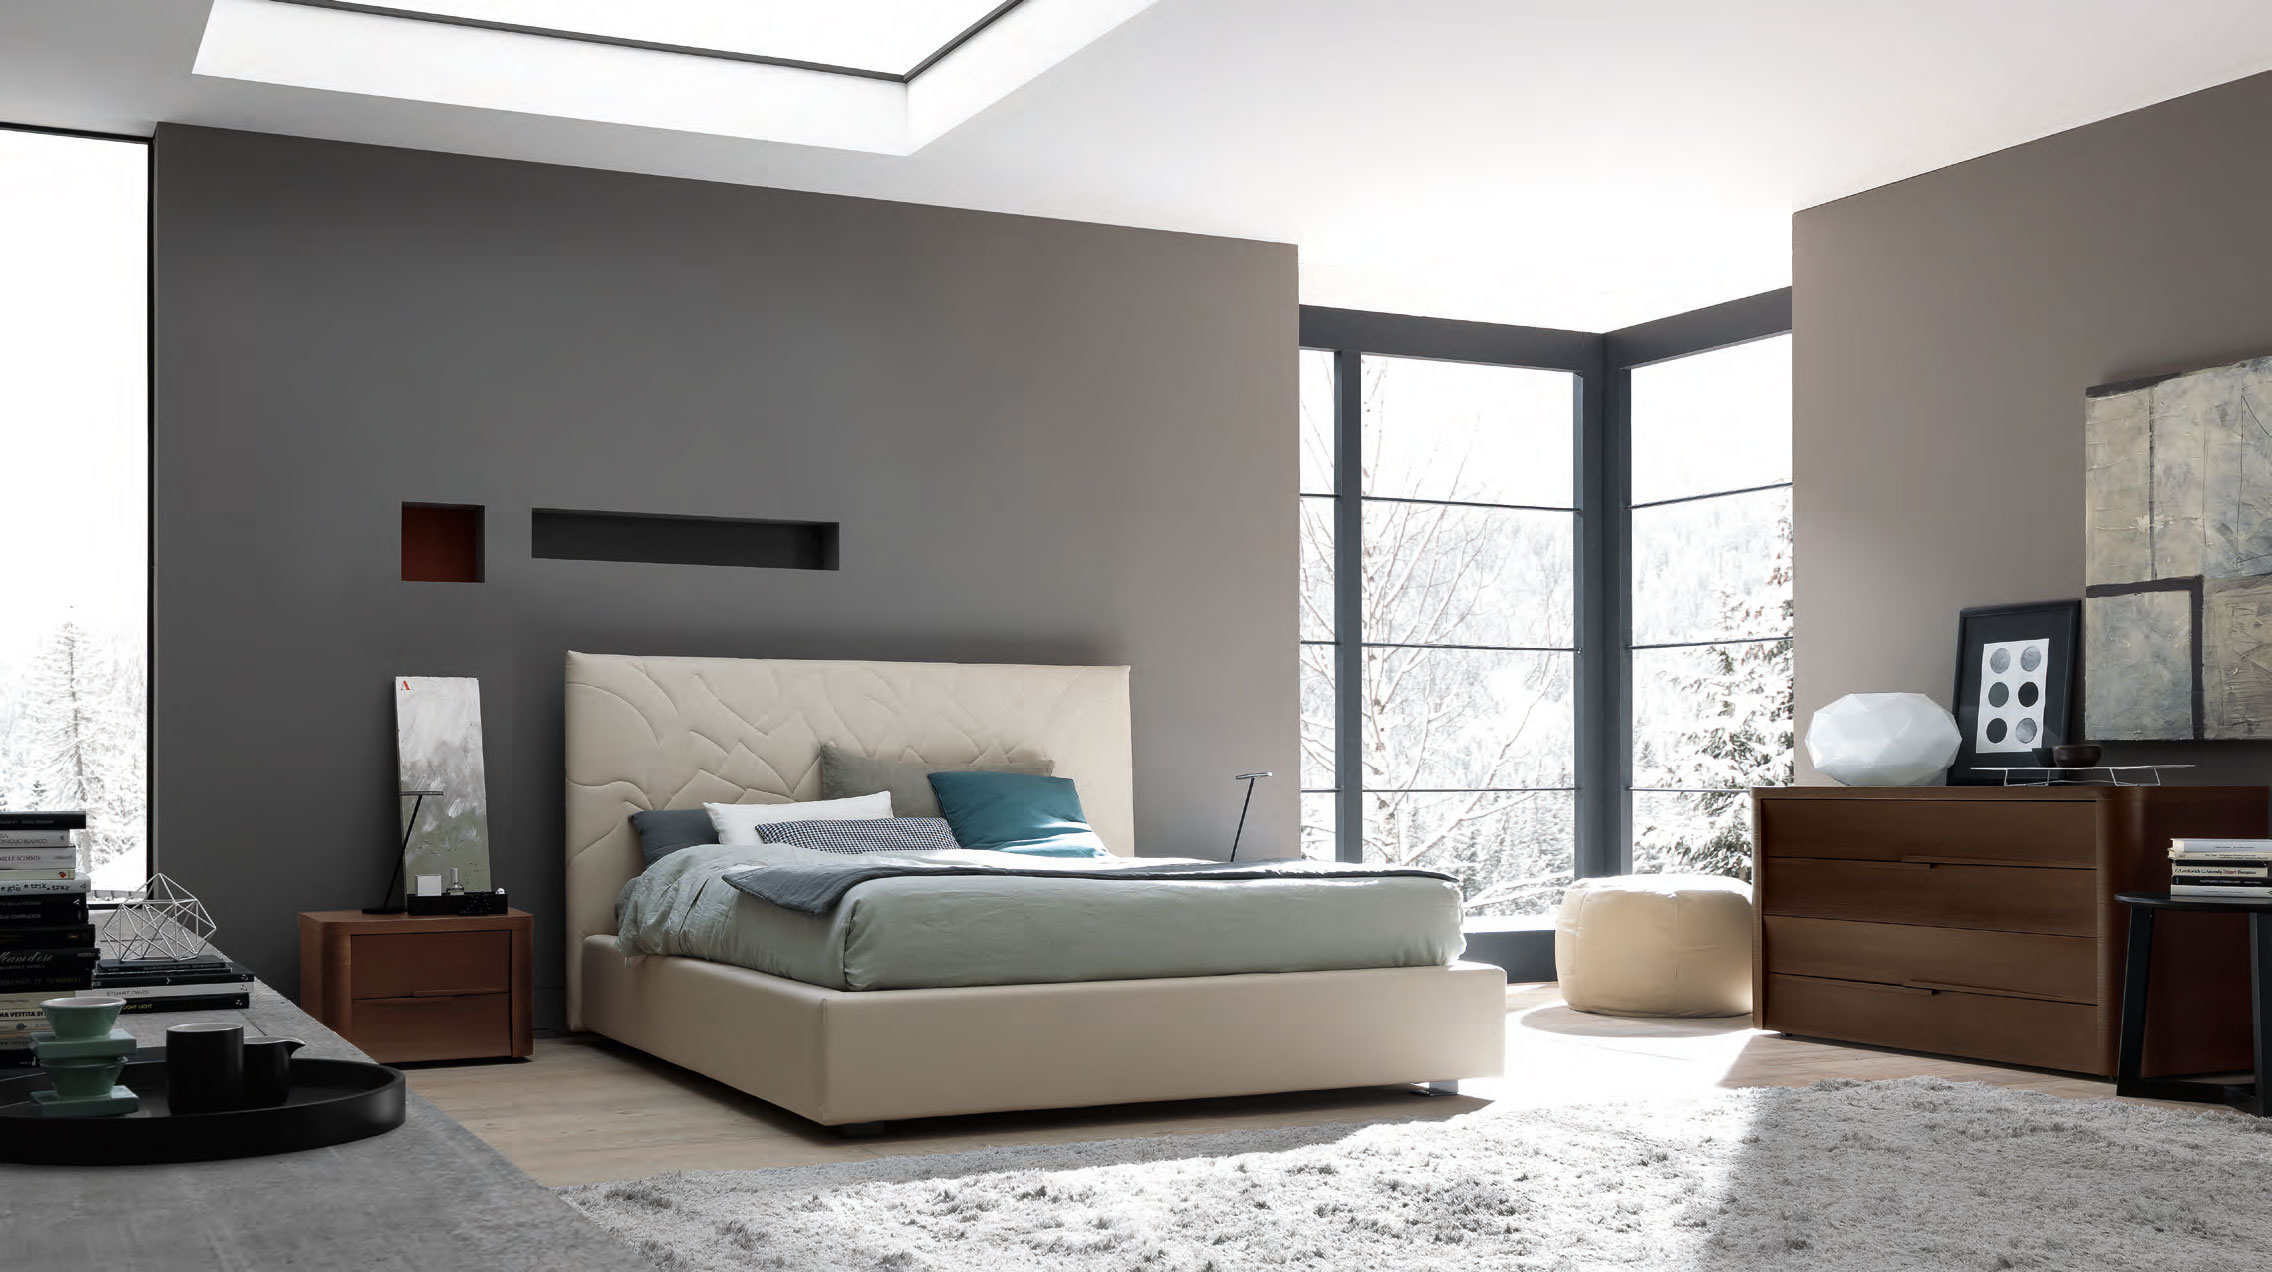 modern-bedroom-design-with-dark-wall-and-white-ceiling-design-along-with-creamy-white-modern-king-size-bed